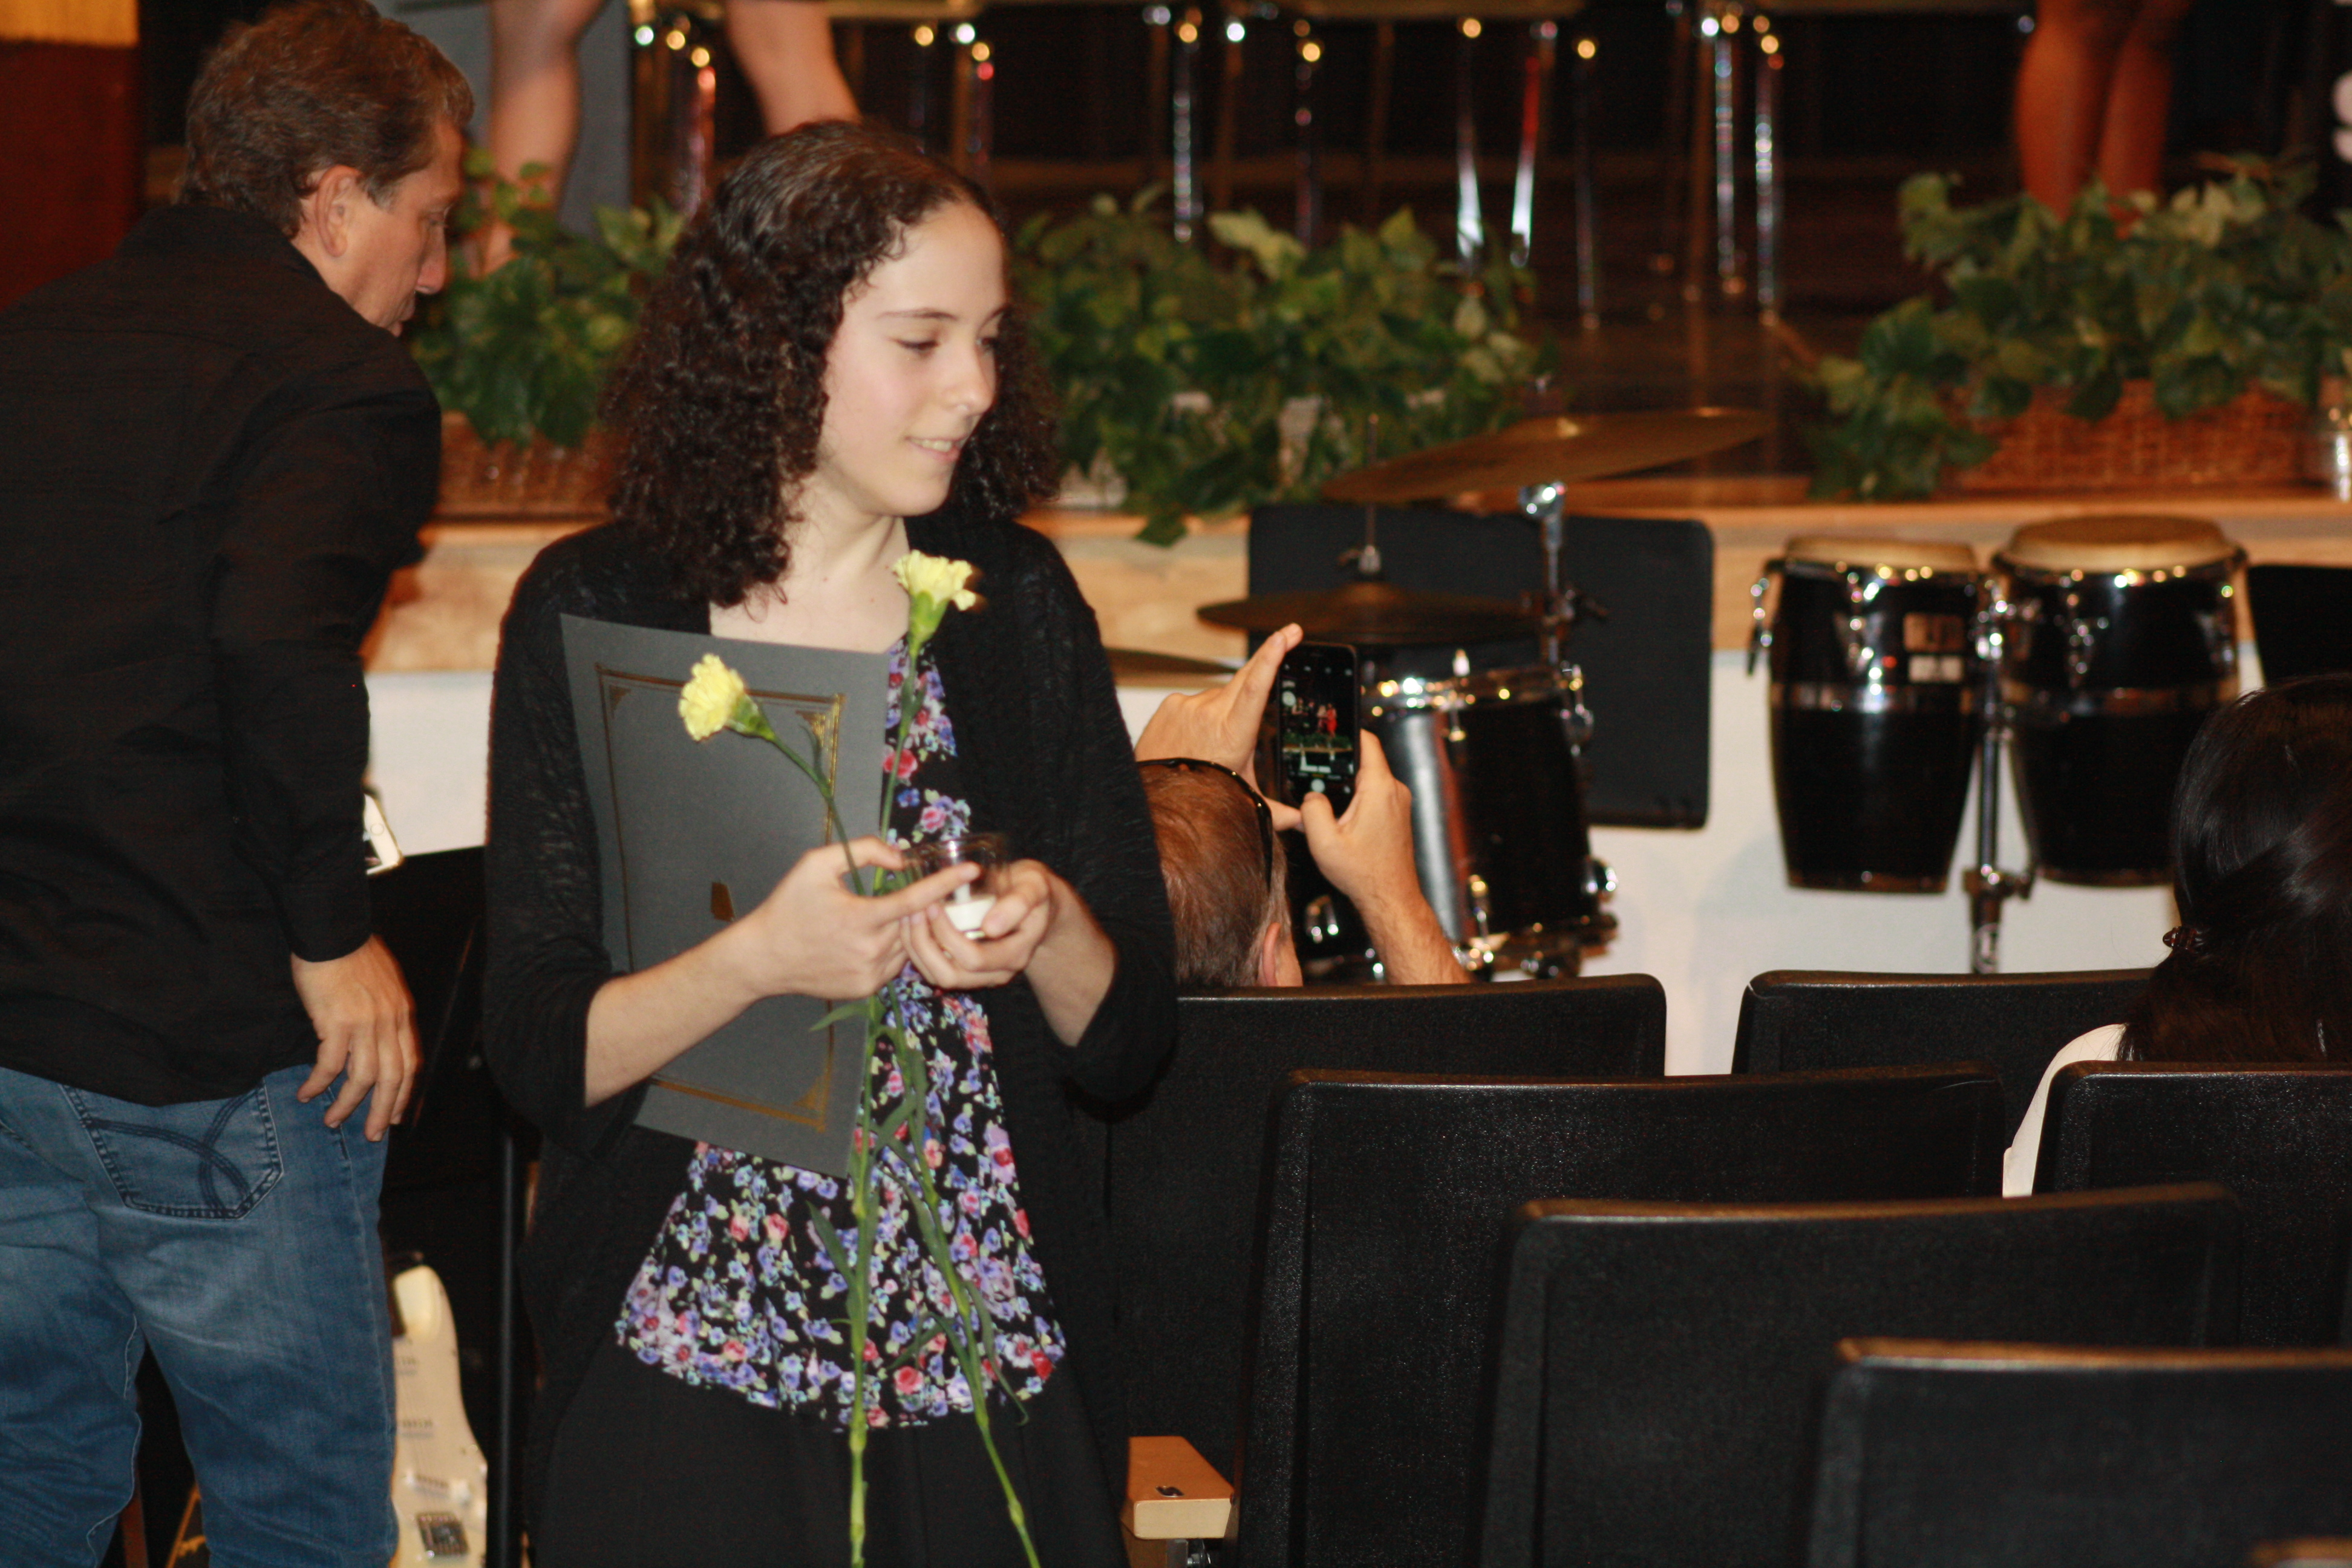 Students inducted to National Honor Society in annual ceremony